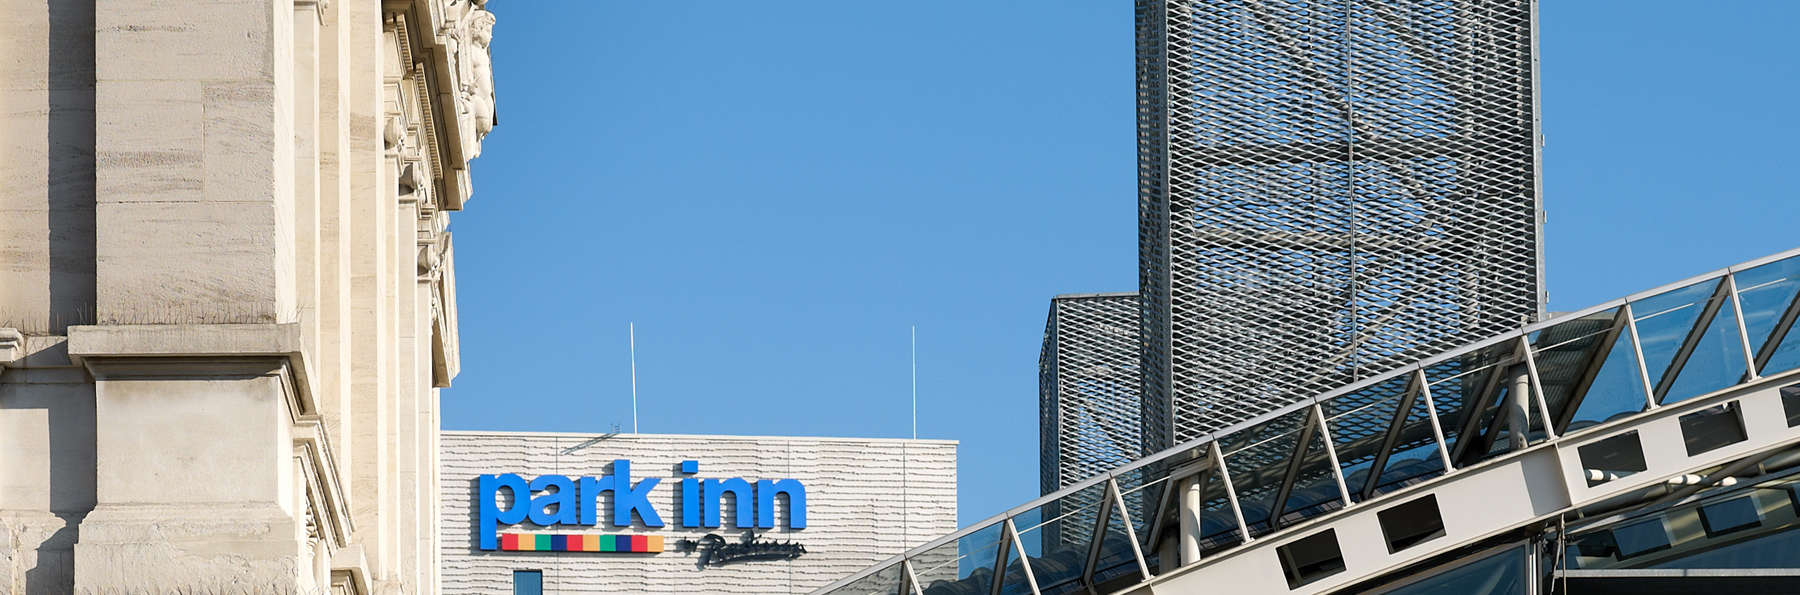 Park Inn by Radisson Leuven - Front